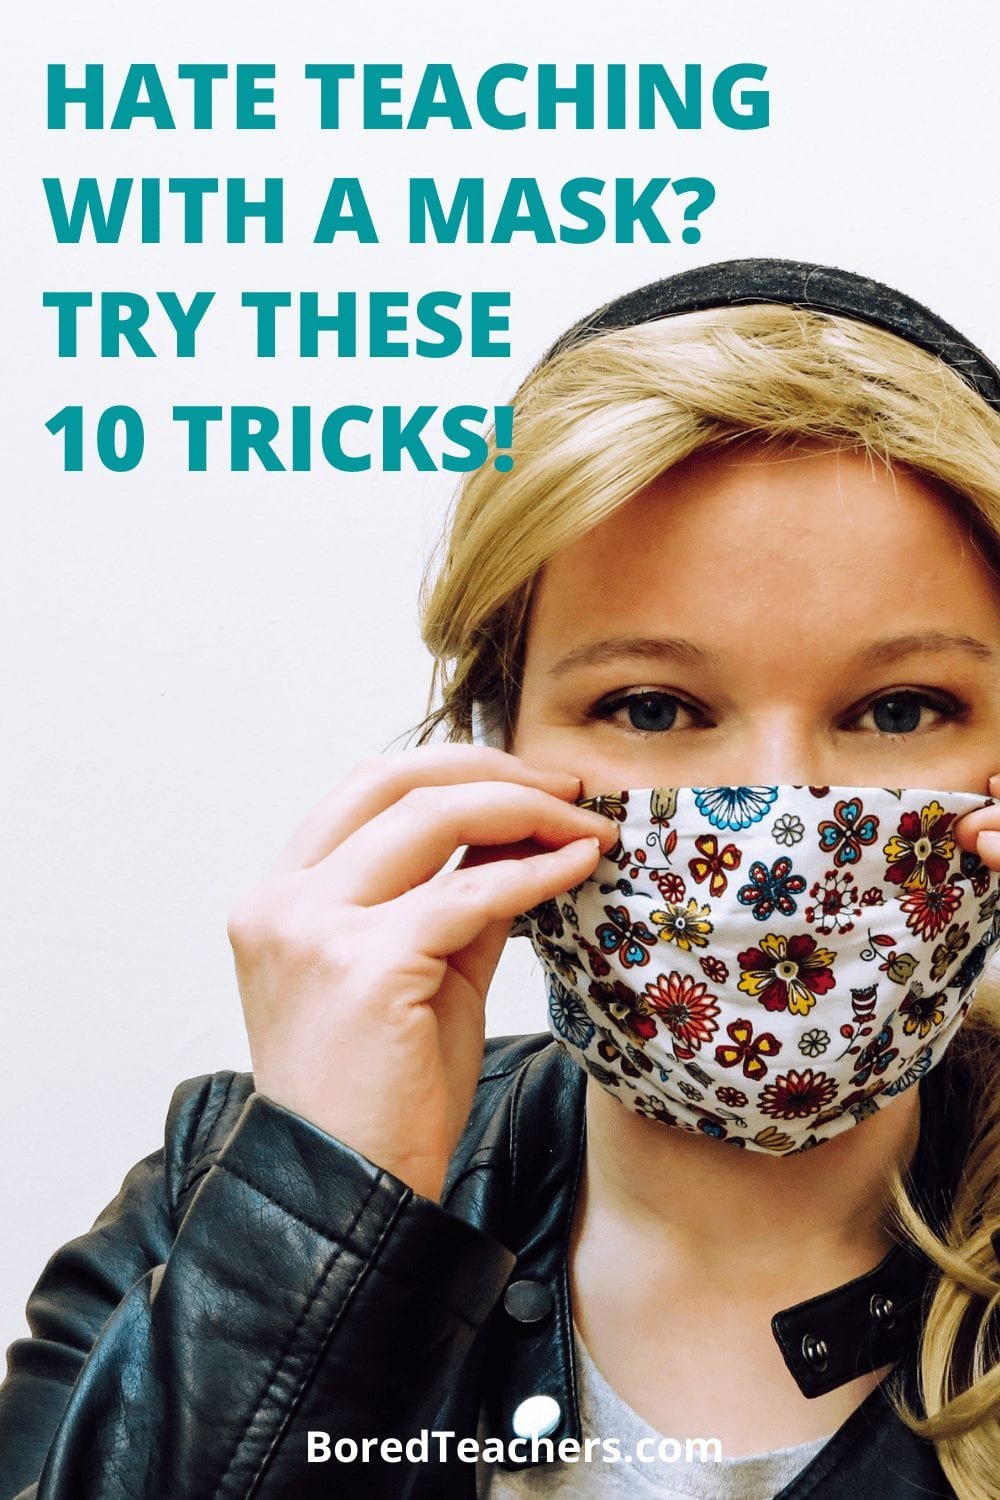 Hate Teaching With a Mask? Try These 10 Tricks!